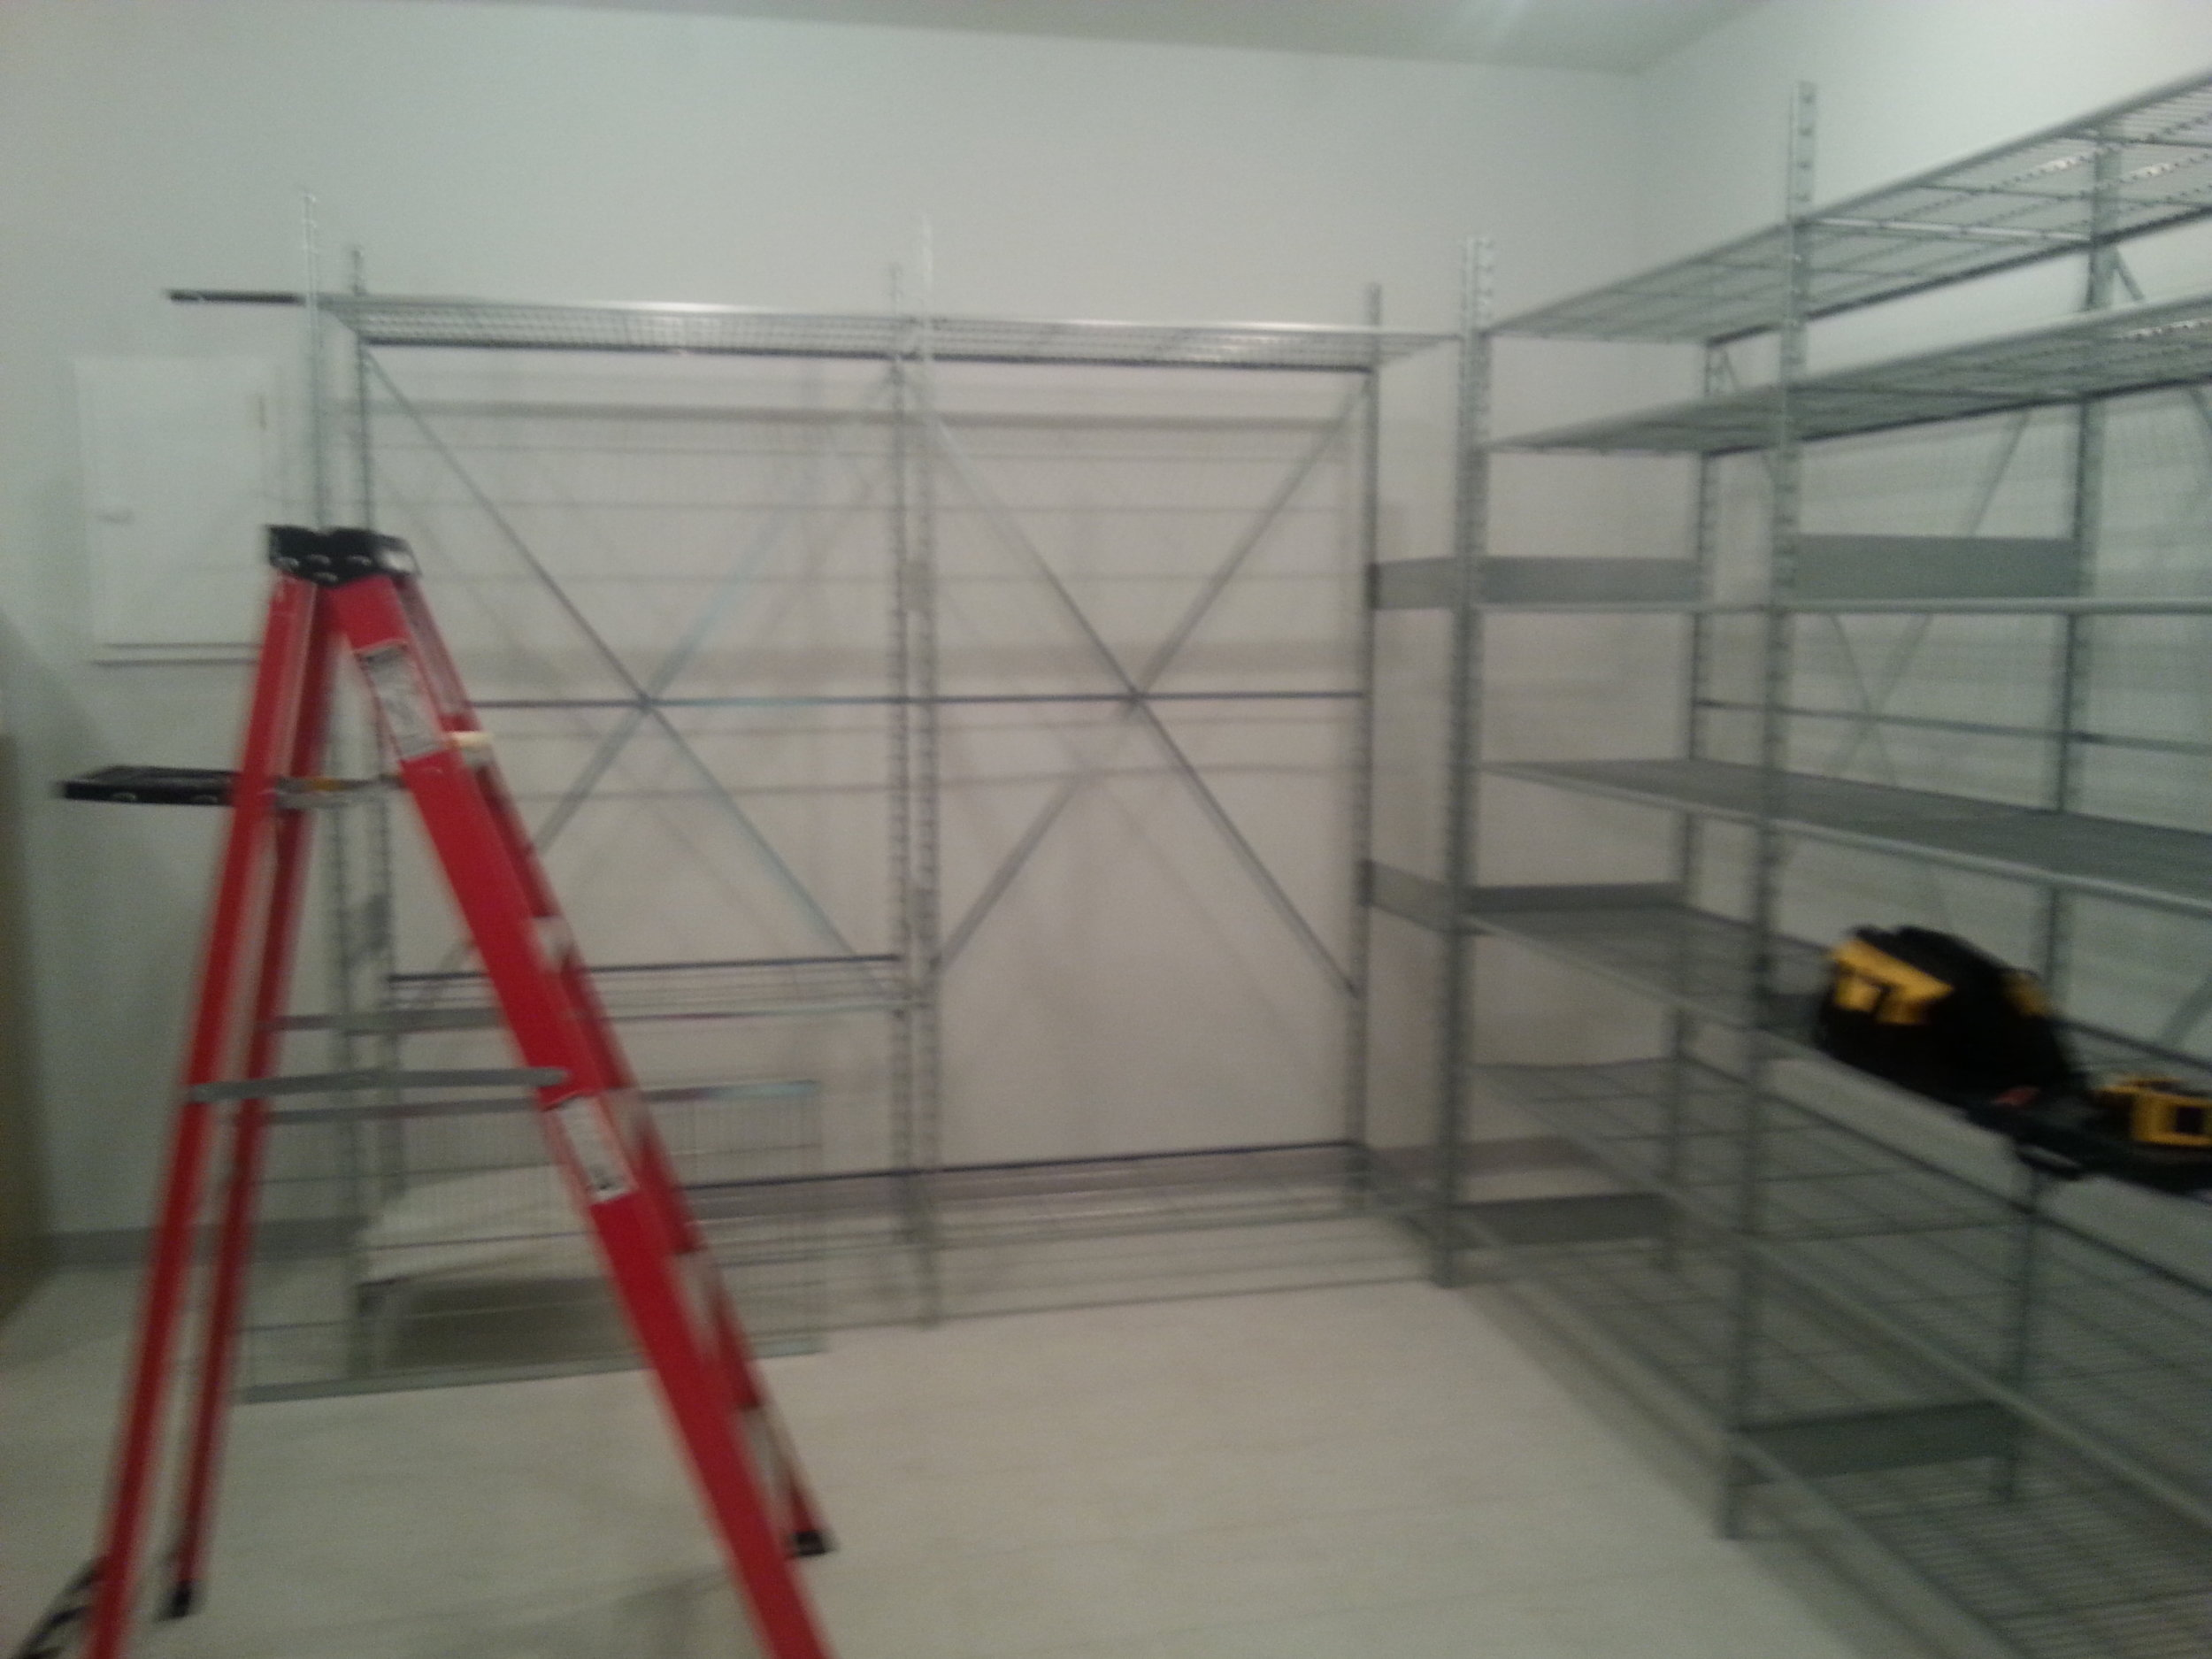 Securing Shelves to Walls